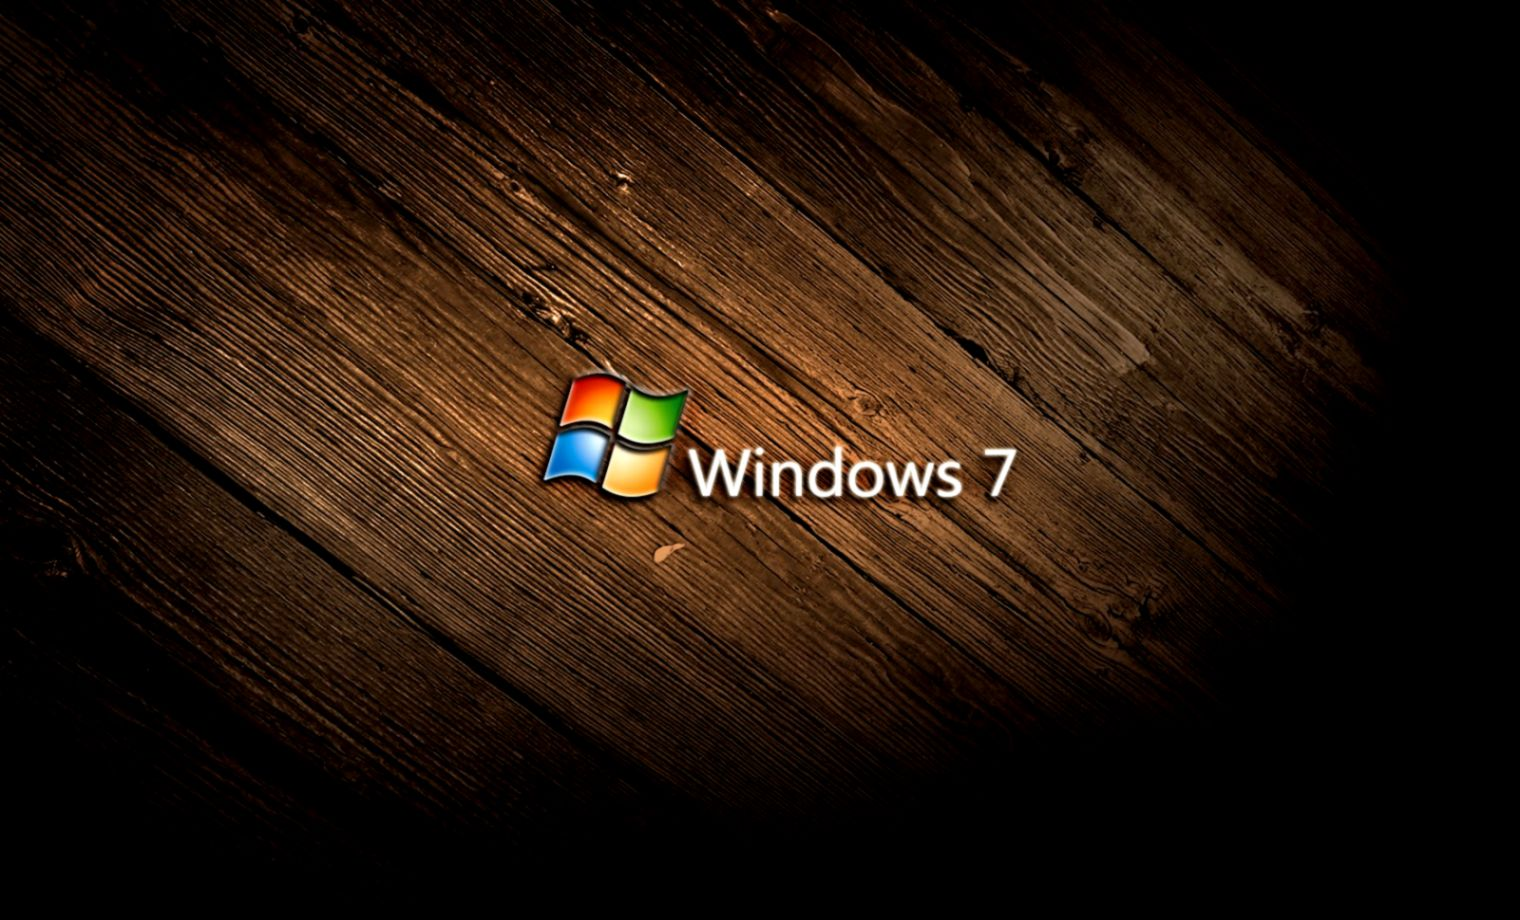 Windows 7 Wallpapers Desktop Win 7 Background Colors Mega Wallpapers 1520x920